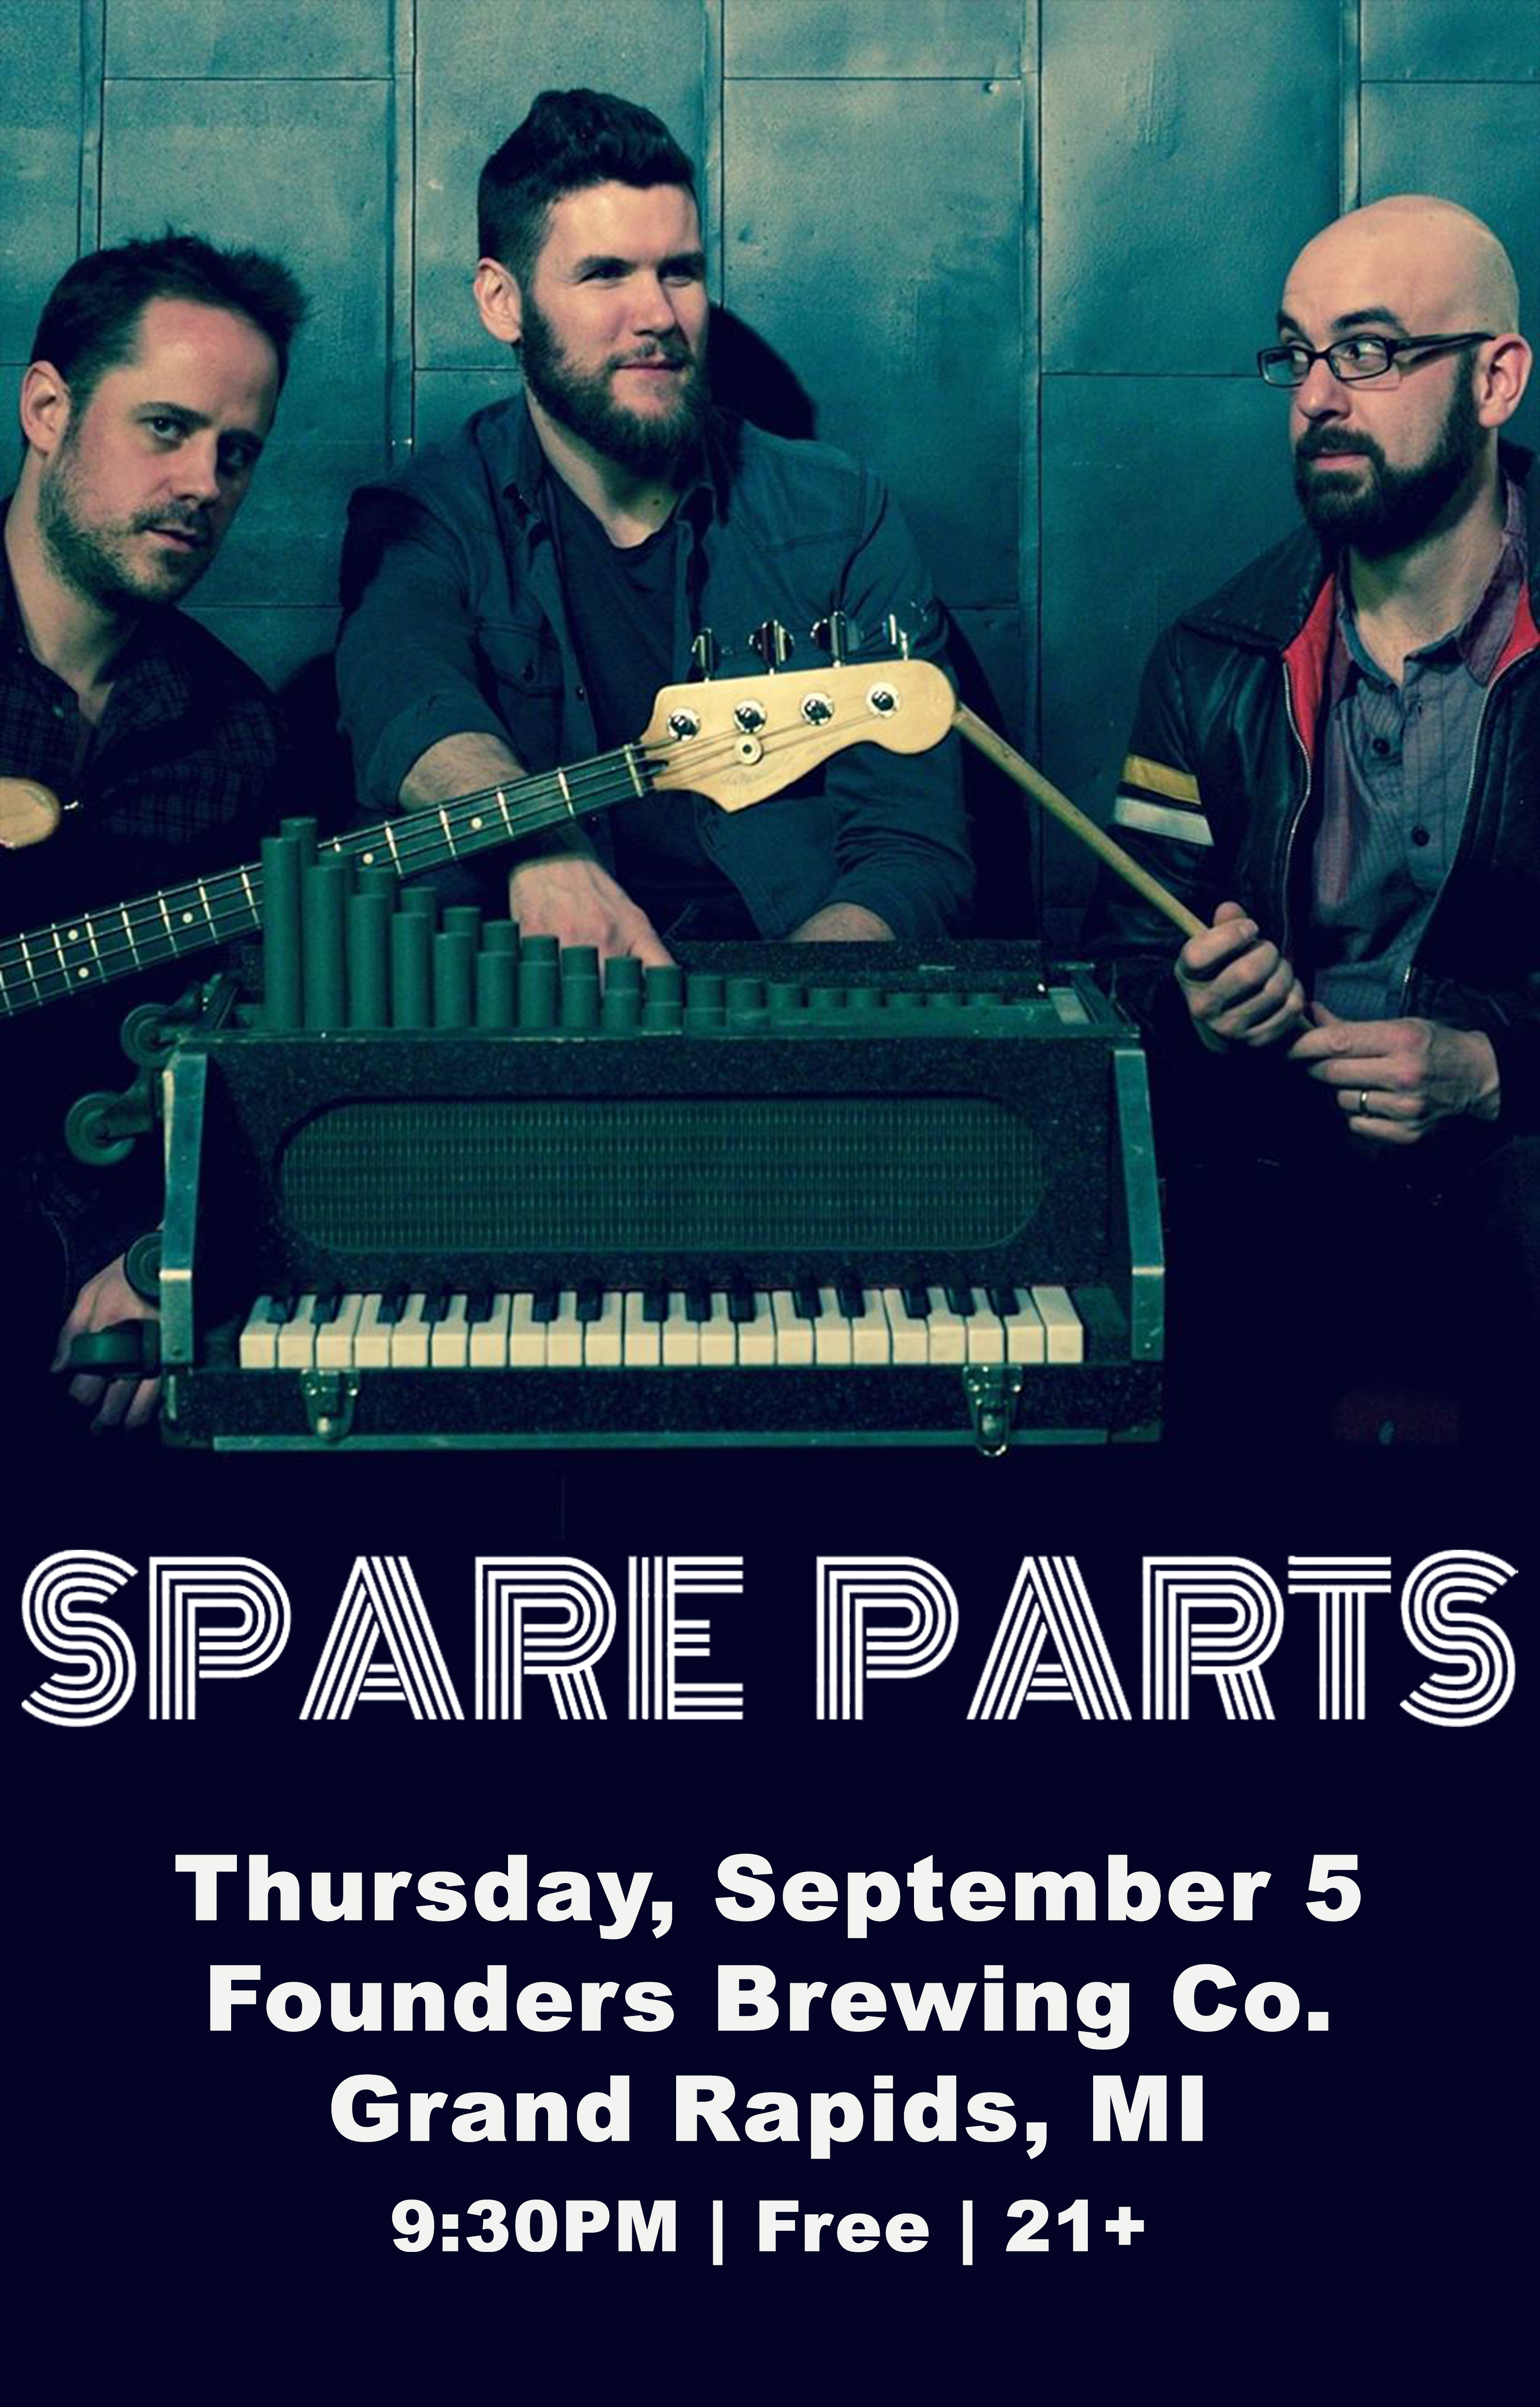 Spare Parts event poster